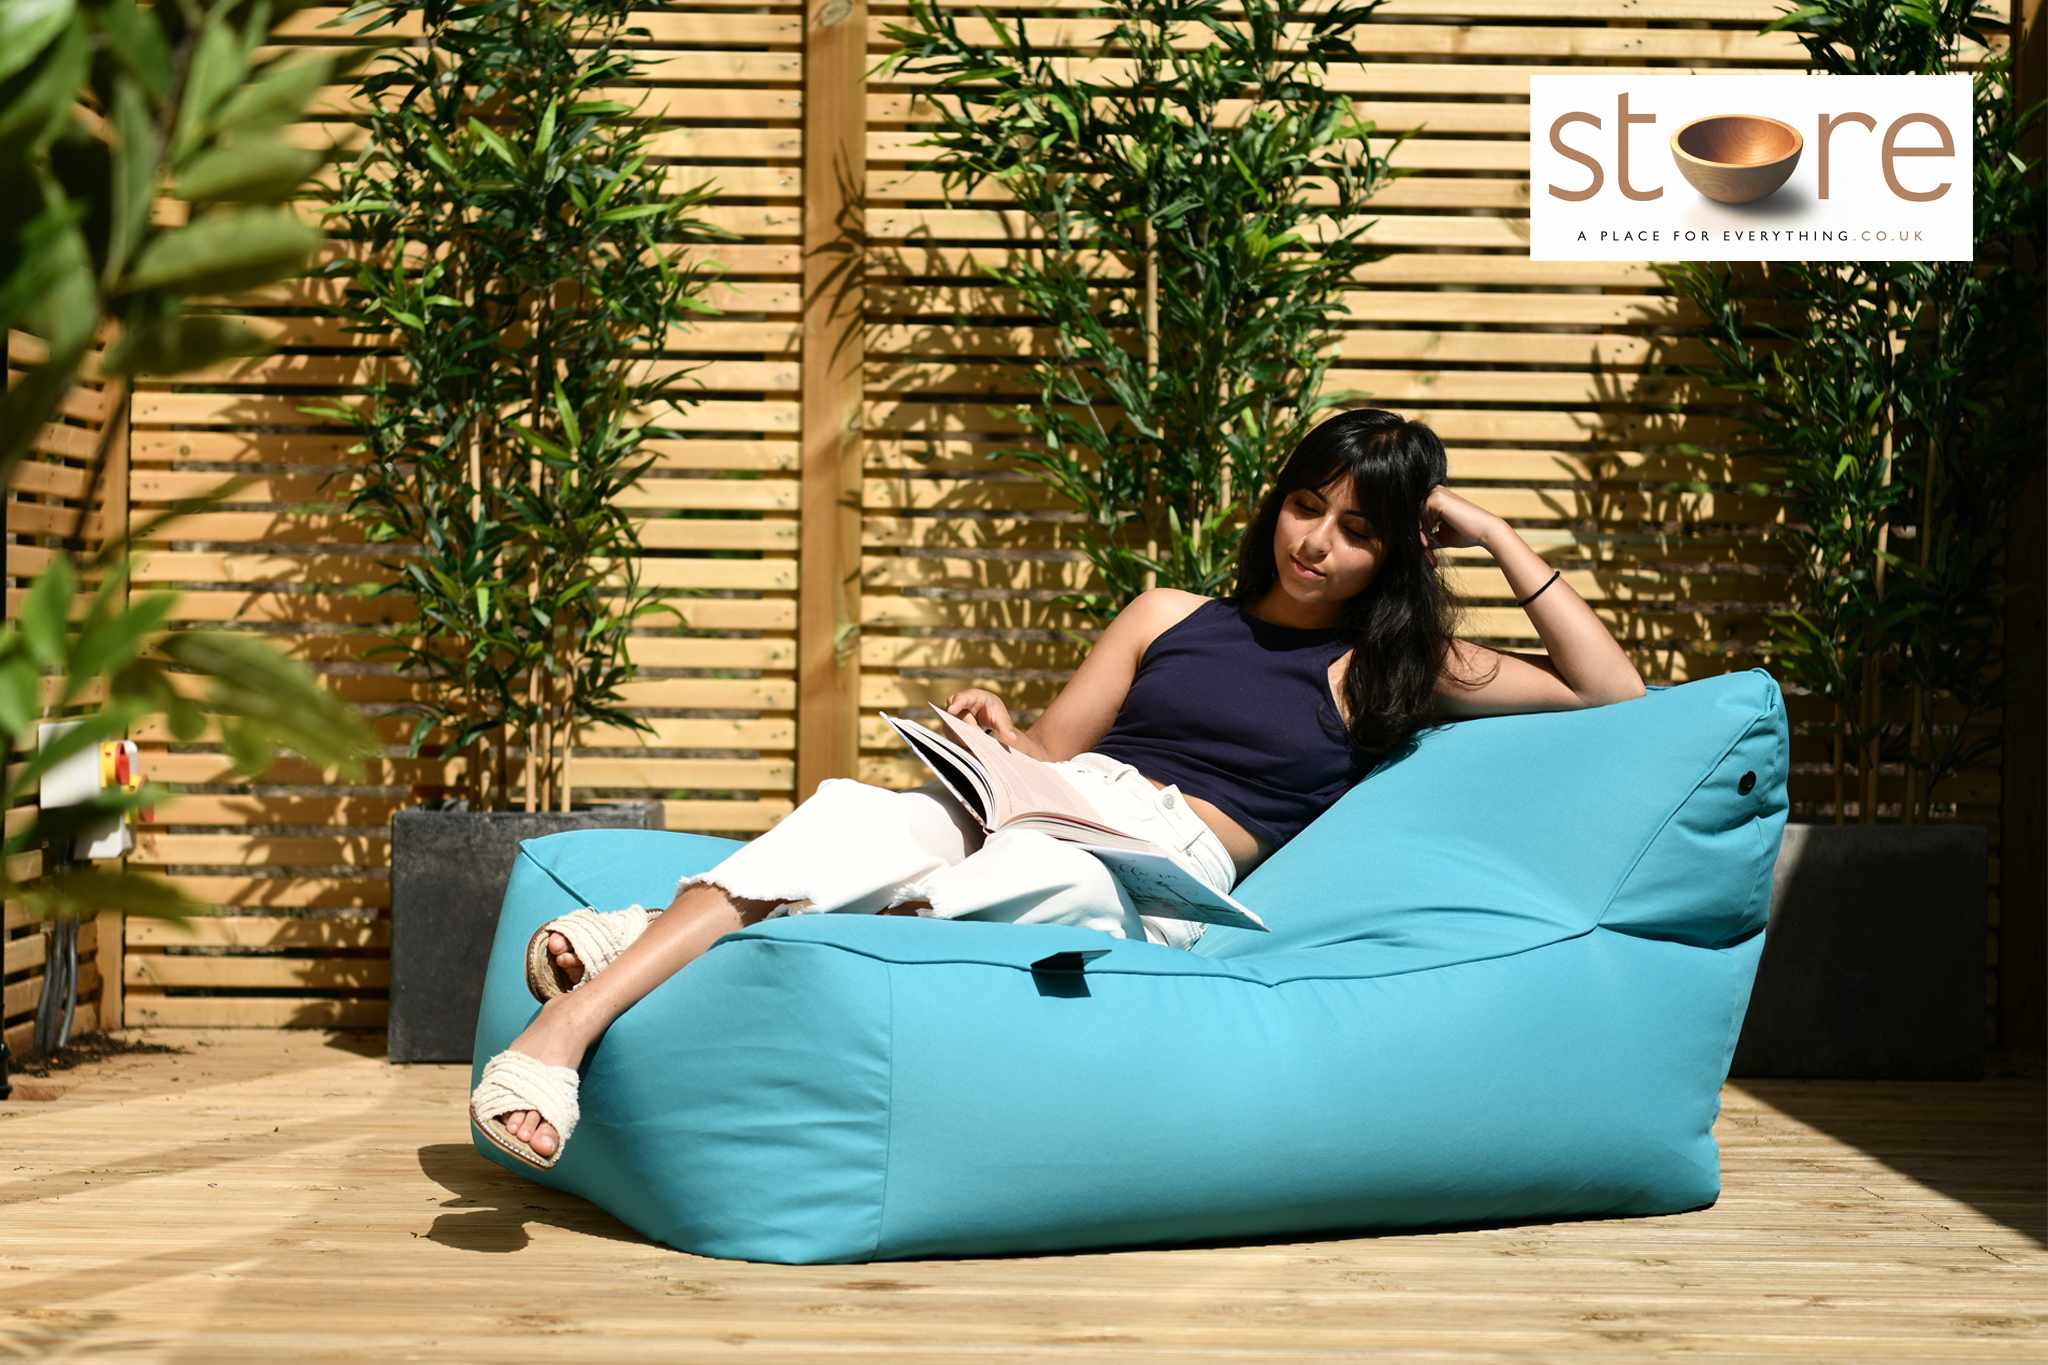 Win an outdoor lounging set from A Place for Everything